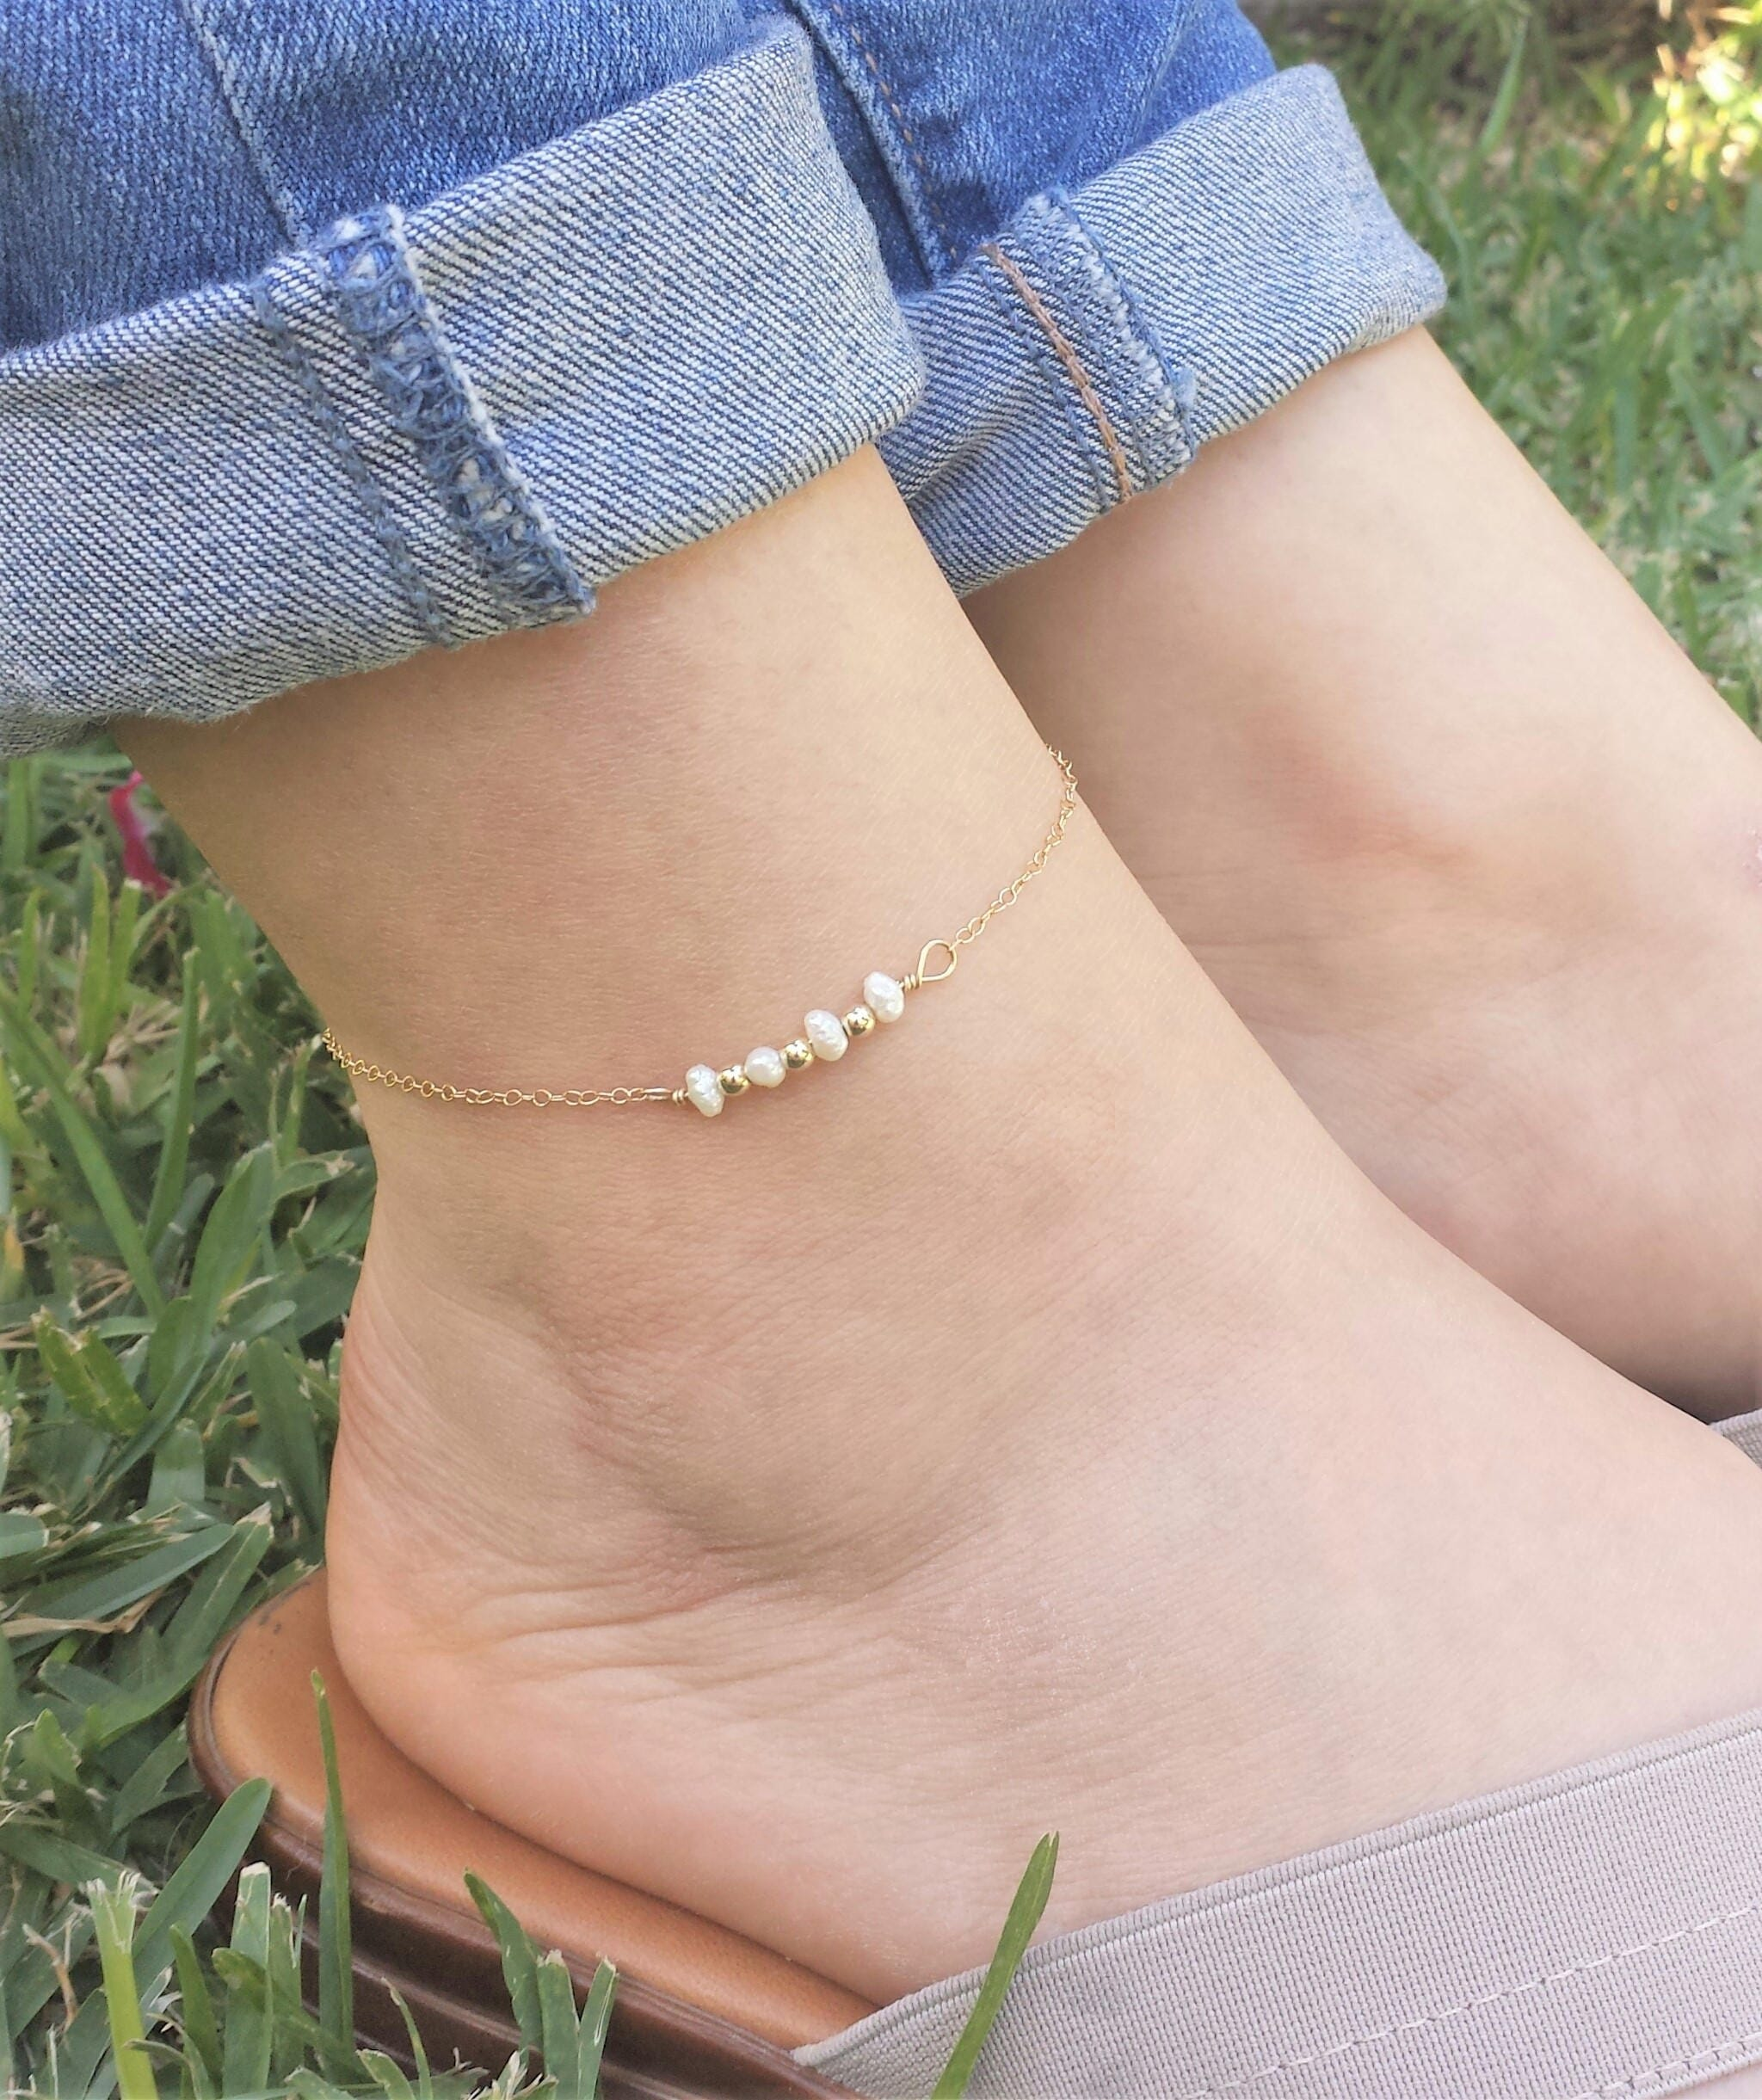 to ankle bracelets a with beads simple anklet bracelet make how jerezwine jewelry string